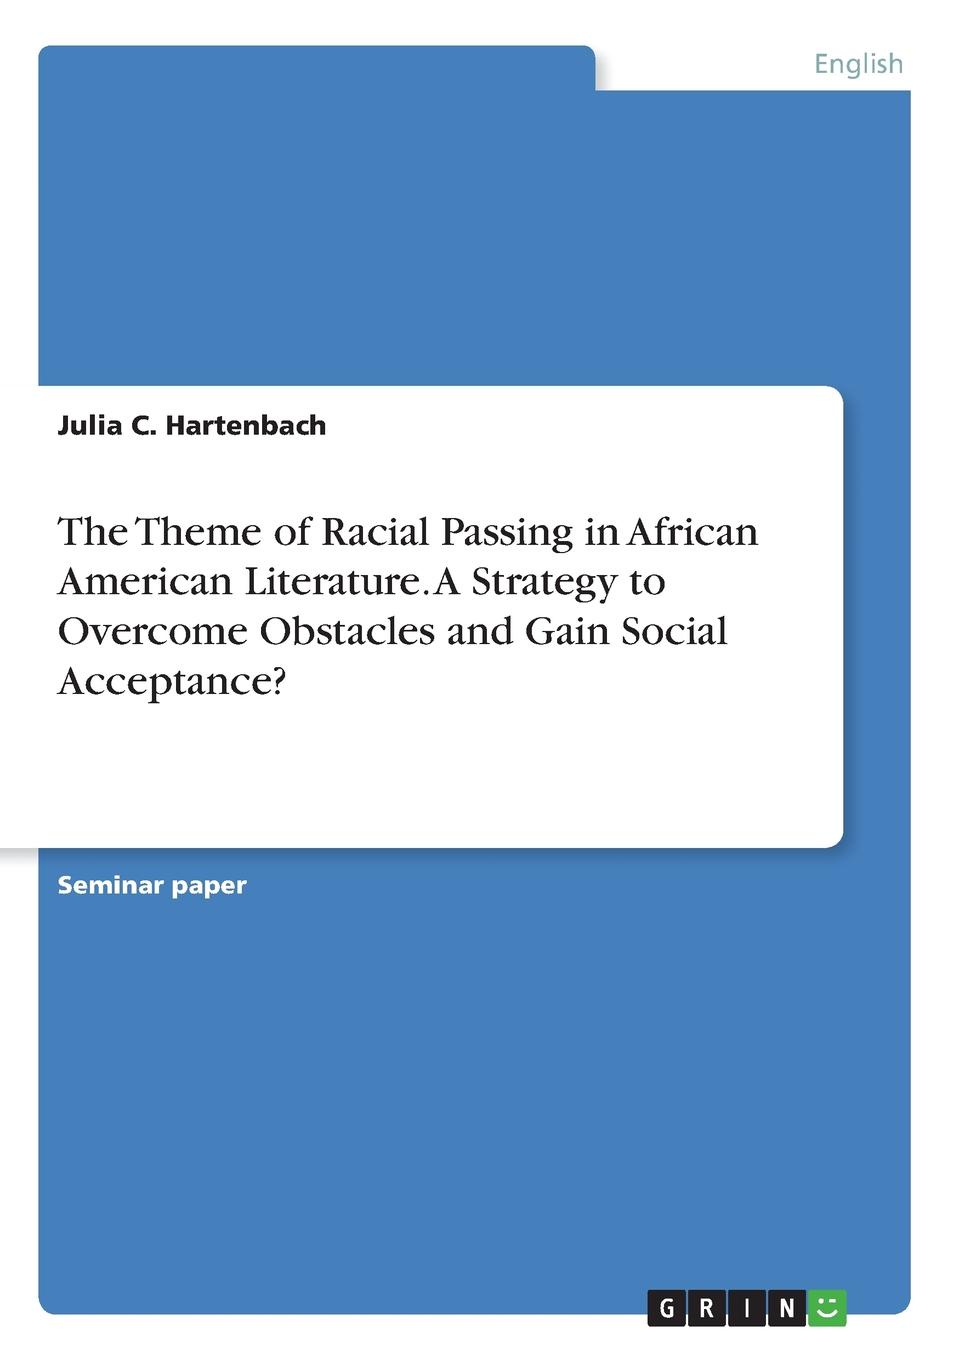 Julia C. Hartenbach The Theme of Racial Passing in African American Literature. A Strategy to Overcome Obstacles and Gain Social Acceptance. цена